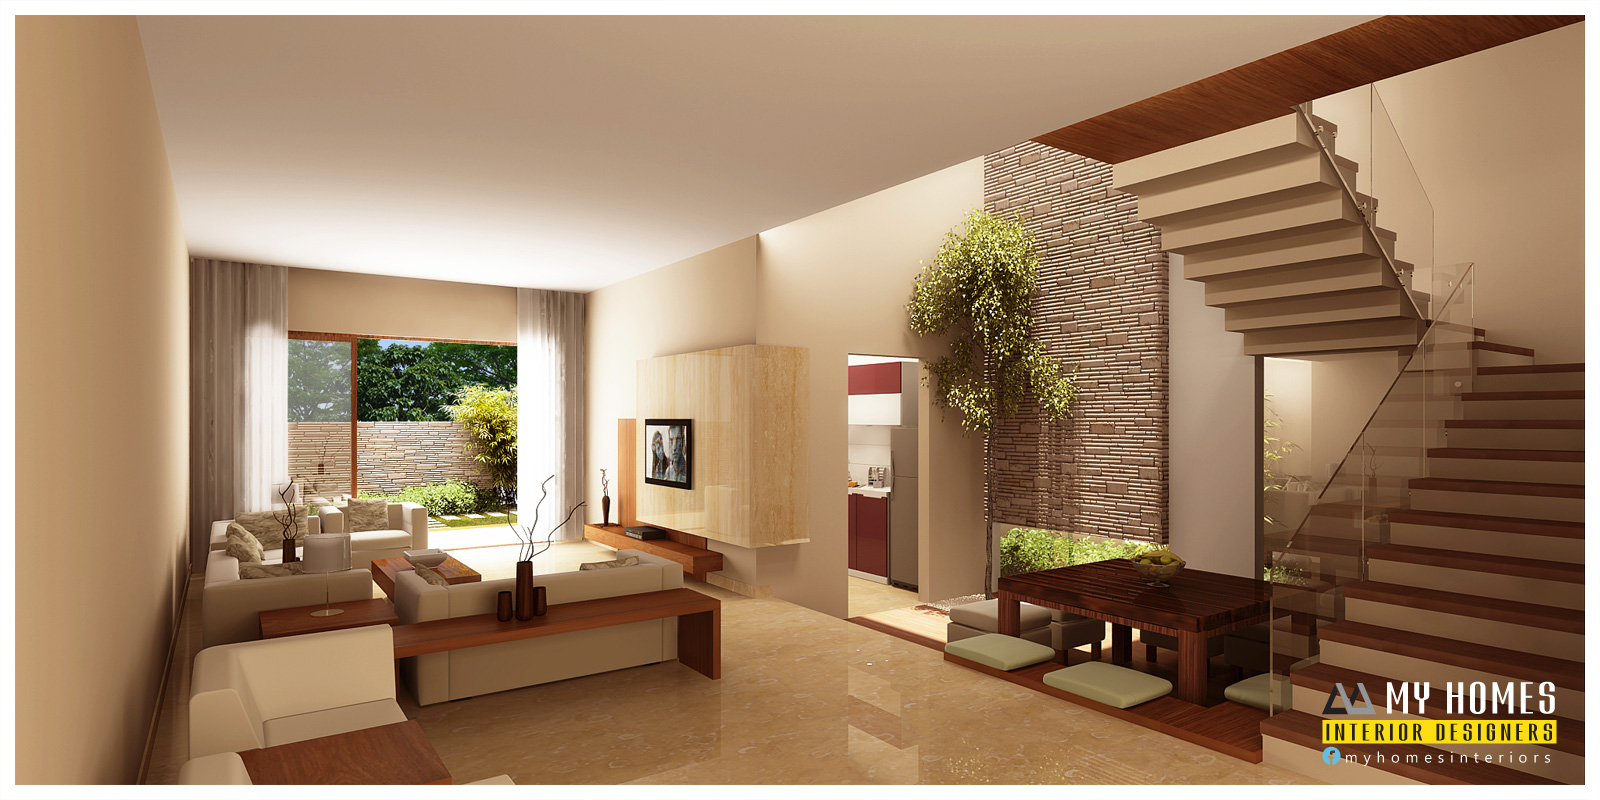 Kerala interior design ideas from designing company thrissur for Designing your new home